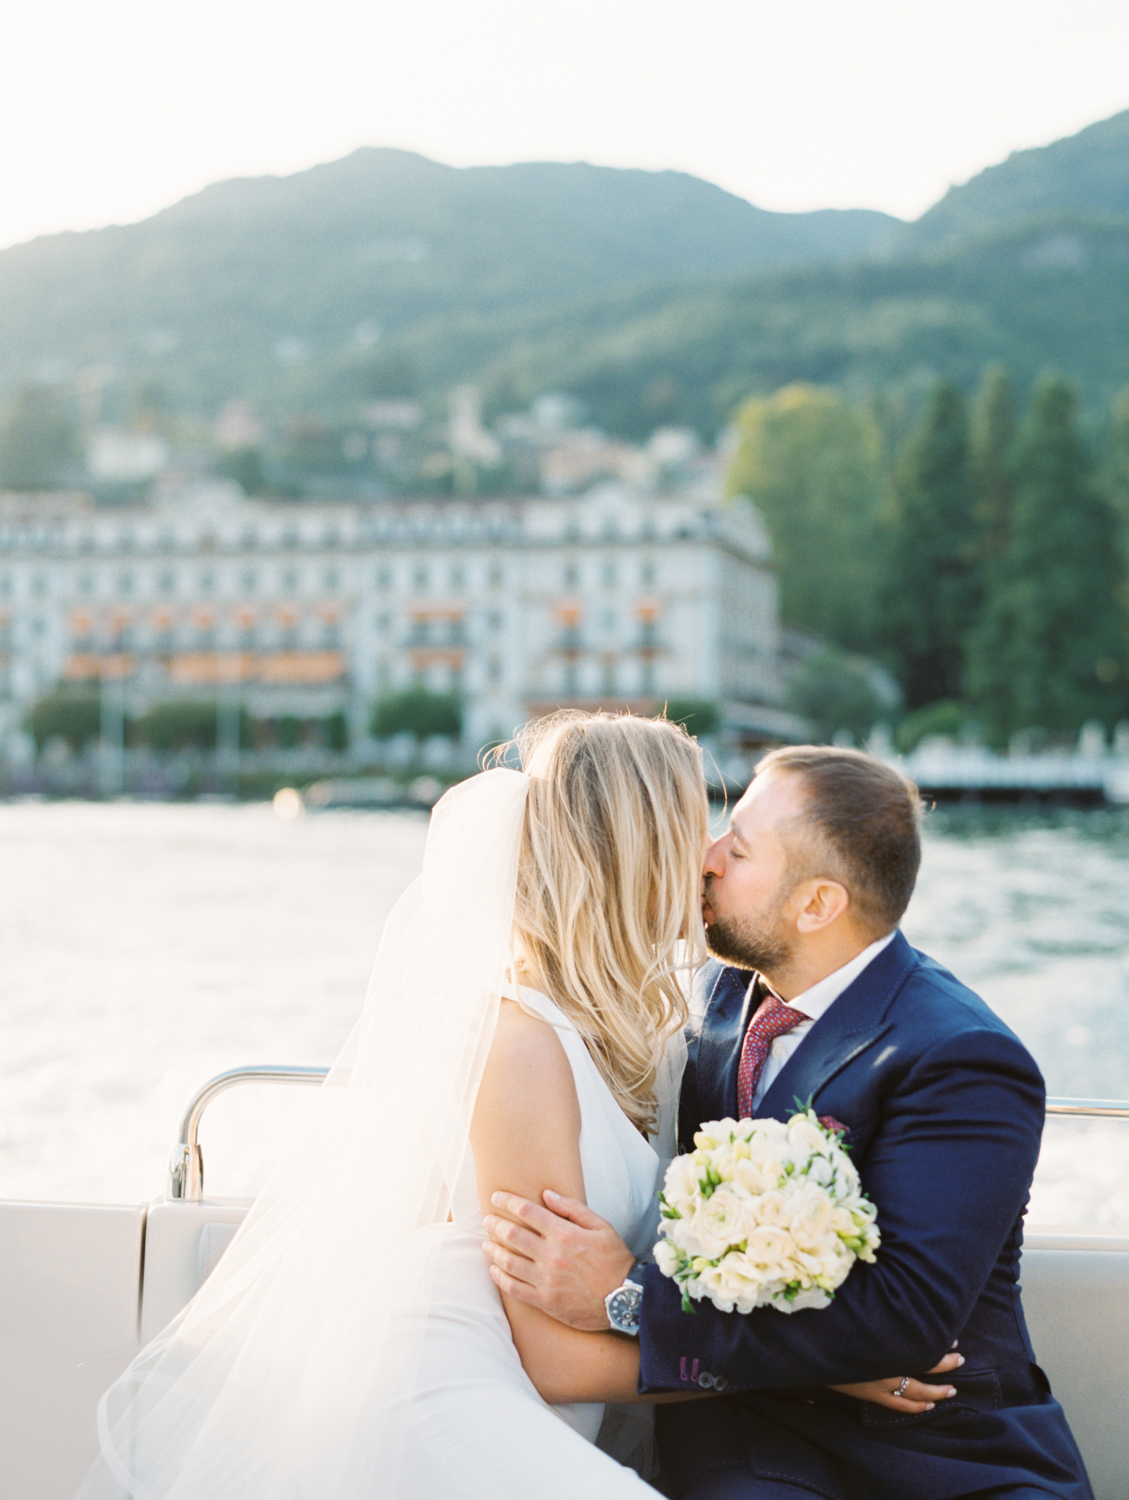 Kissing couple on the boat with beautiful lake como view